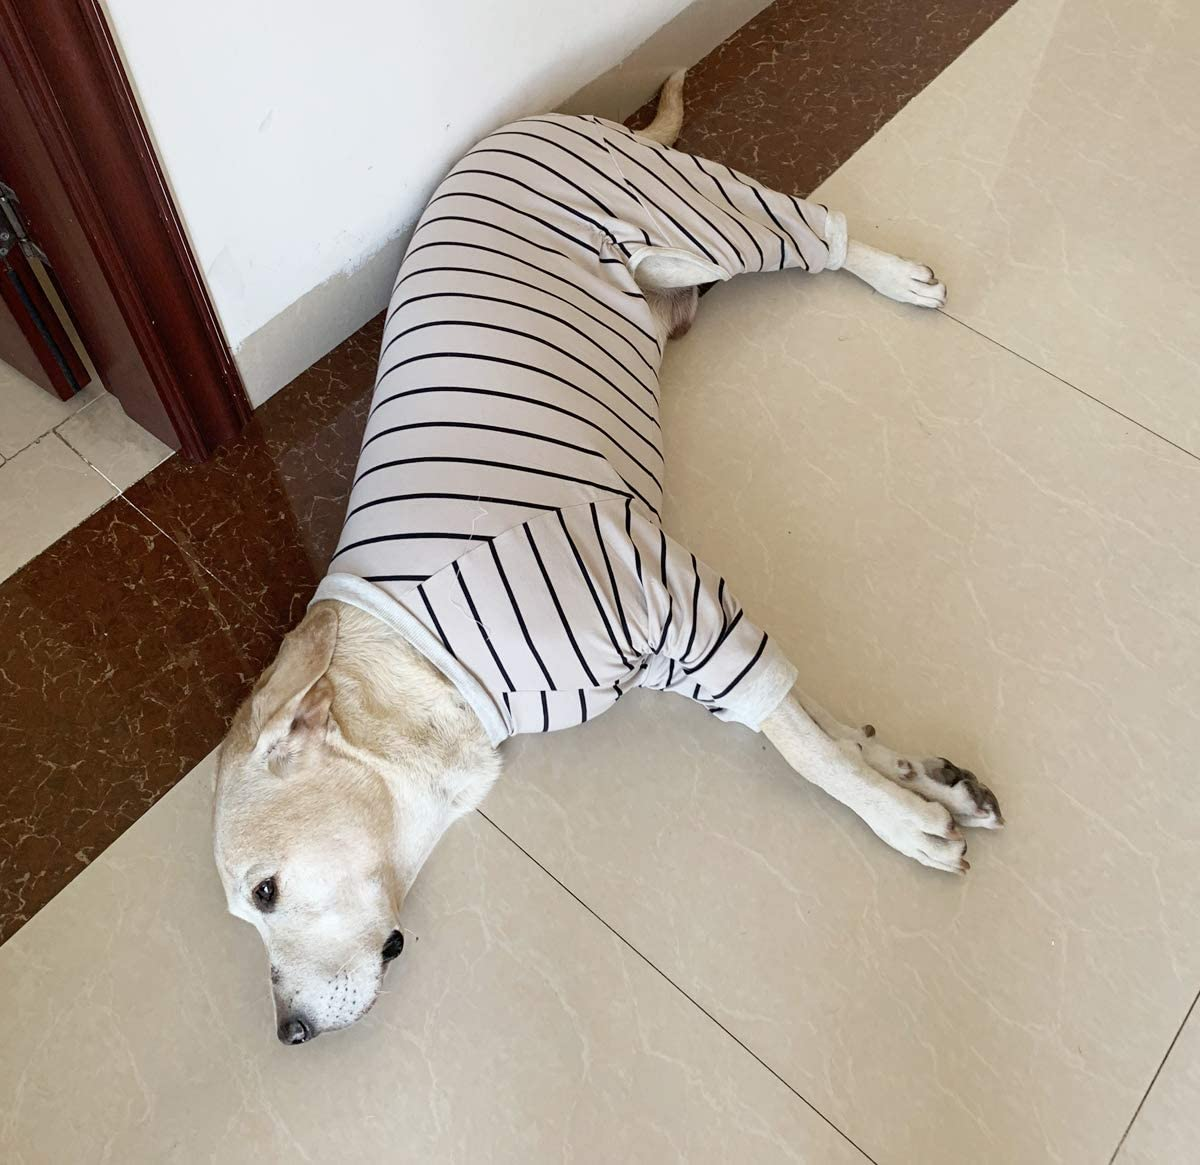 BT Bear Large Dog Clothes Grey Elastic Classic Striped Pet Clothes Protect Joints Anti-Hair Four-legged Dog Pajamas Dog Jumpsuit For Medium Dogs Large Dogs Labrador